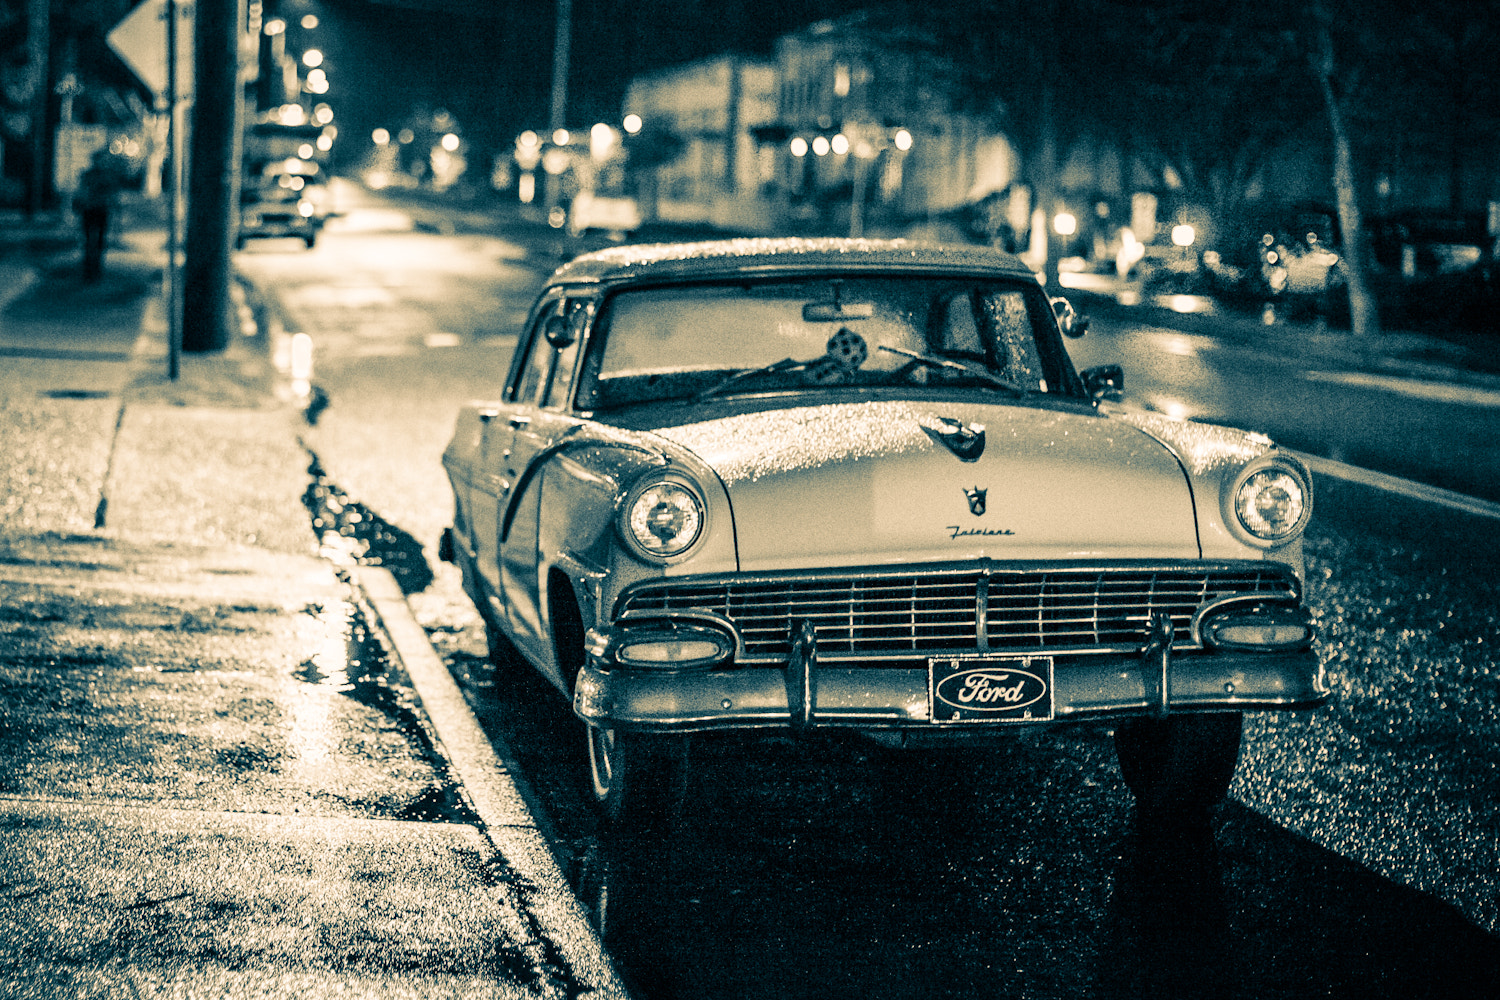 Photograph A Proper Car For A Night Out - Revisited by Ryan Katsanes on 500px